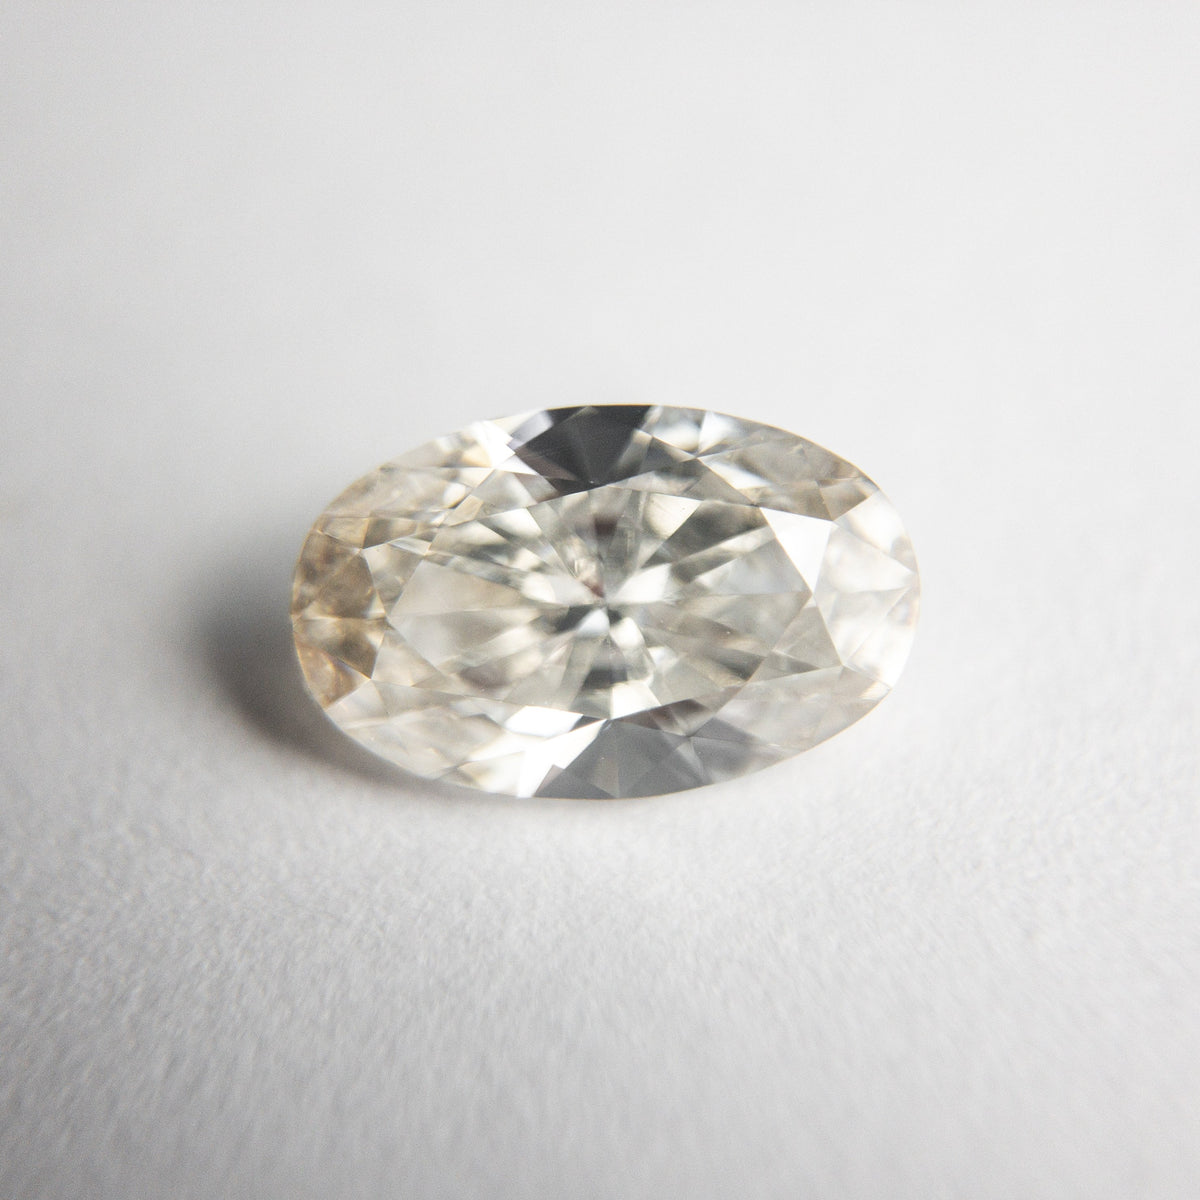 1.21ct 8.89x5.64x3.21mm VS2 Champagne Oval Brilliant 18534-01